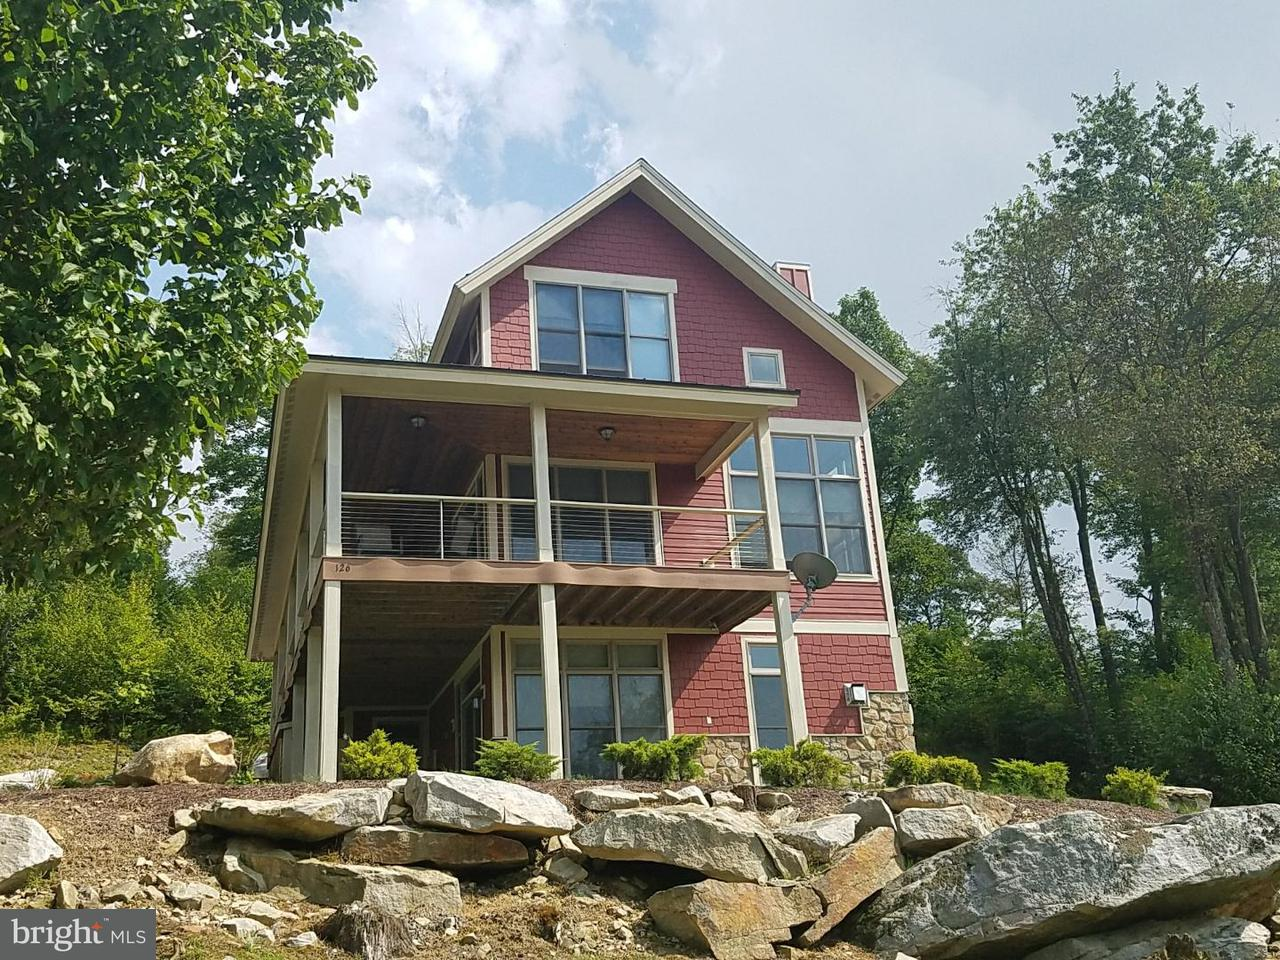 Single Family Home for Sale at 126 ROCKY CAMP Road 126 ROCKY CAMP Road Mc Henry, Maryland 21541 United States